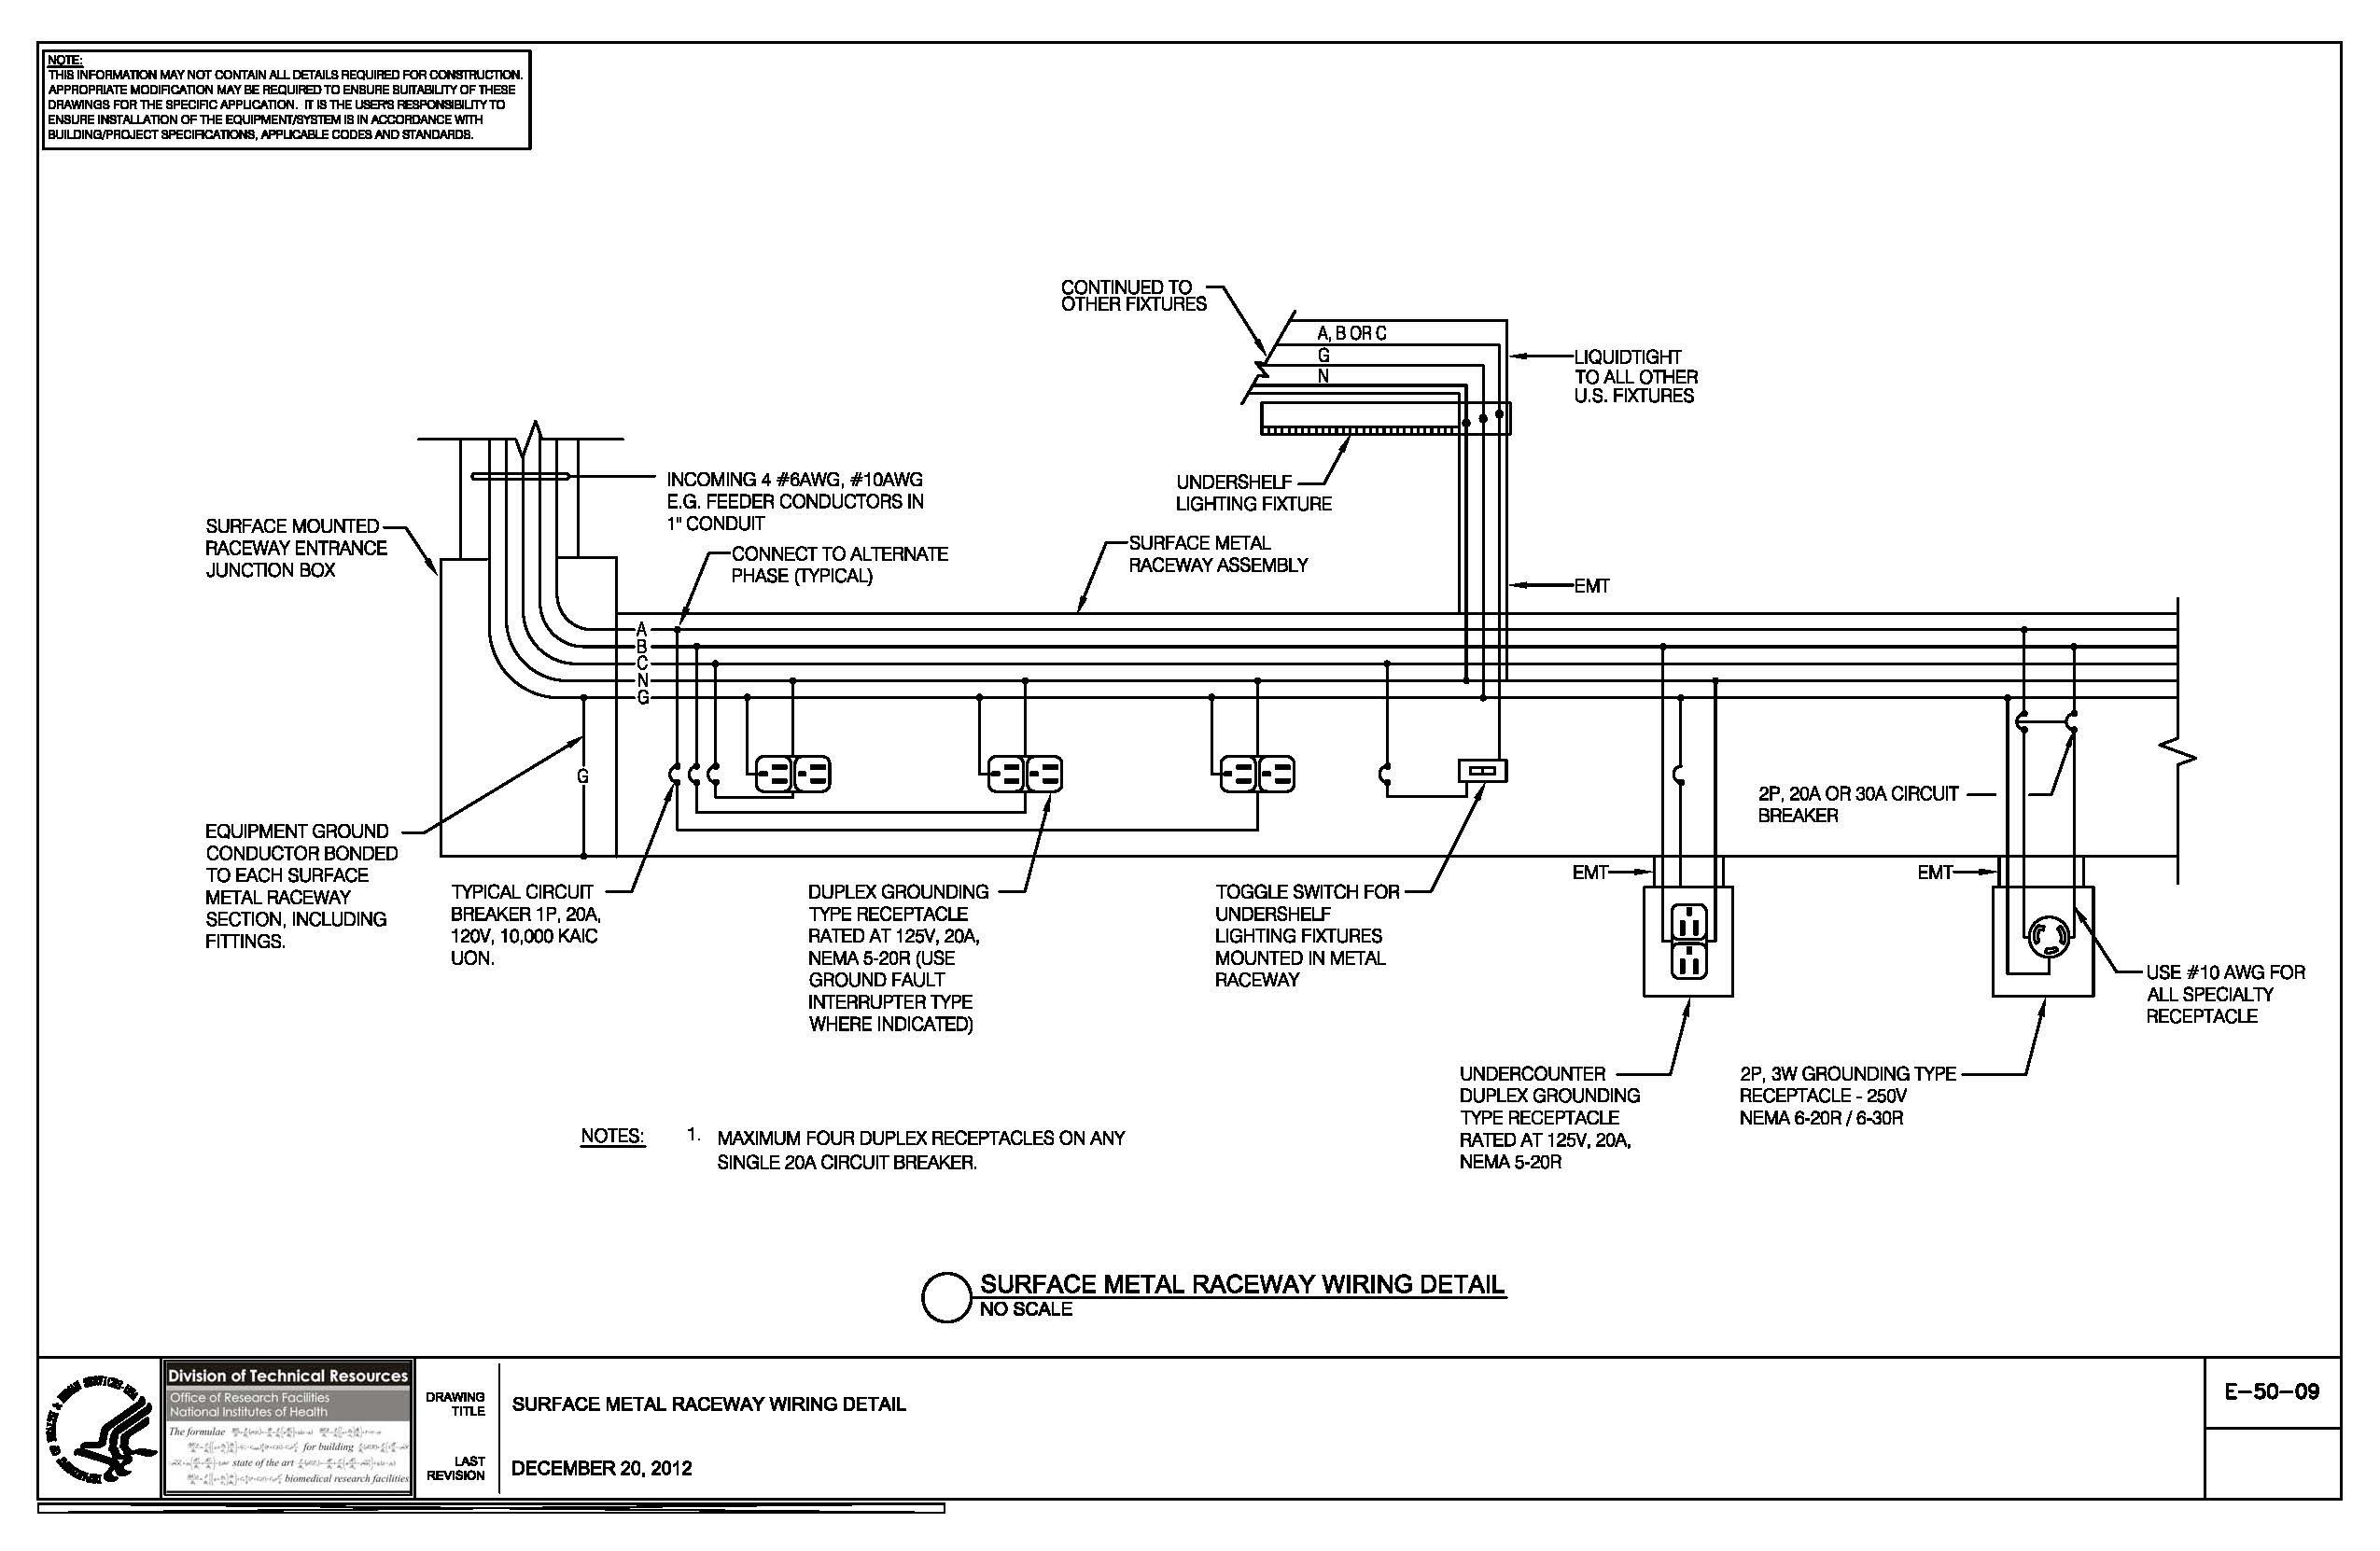 swimming pool electrical wiring diagram Collection-swimming pool wiring diagram Collection of E 50 09 Surface Metal Raceway Wiring Detail NIH DOWNLOAD Wiring Diagram Detail Name swimming pool 11-q